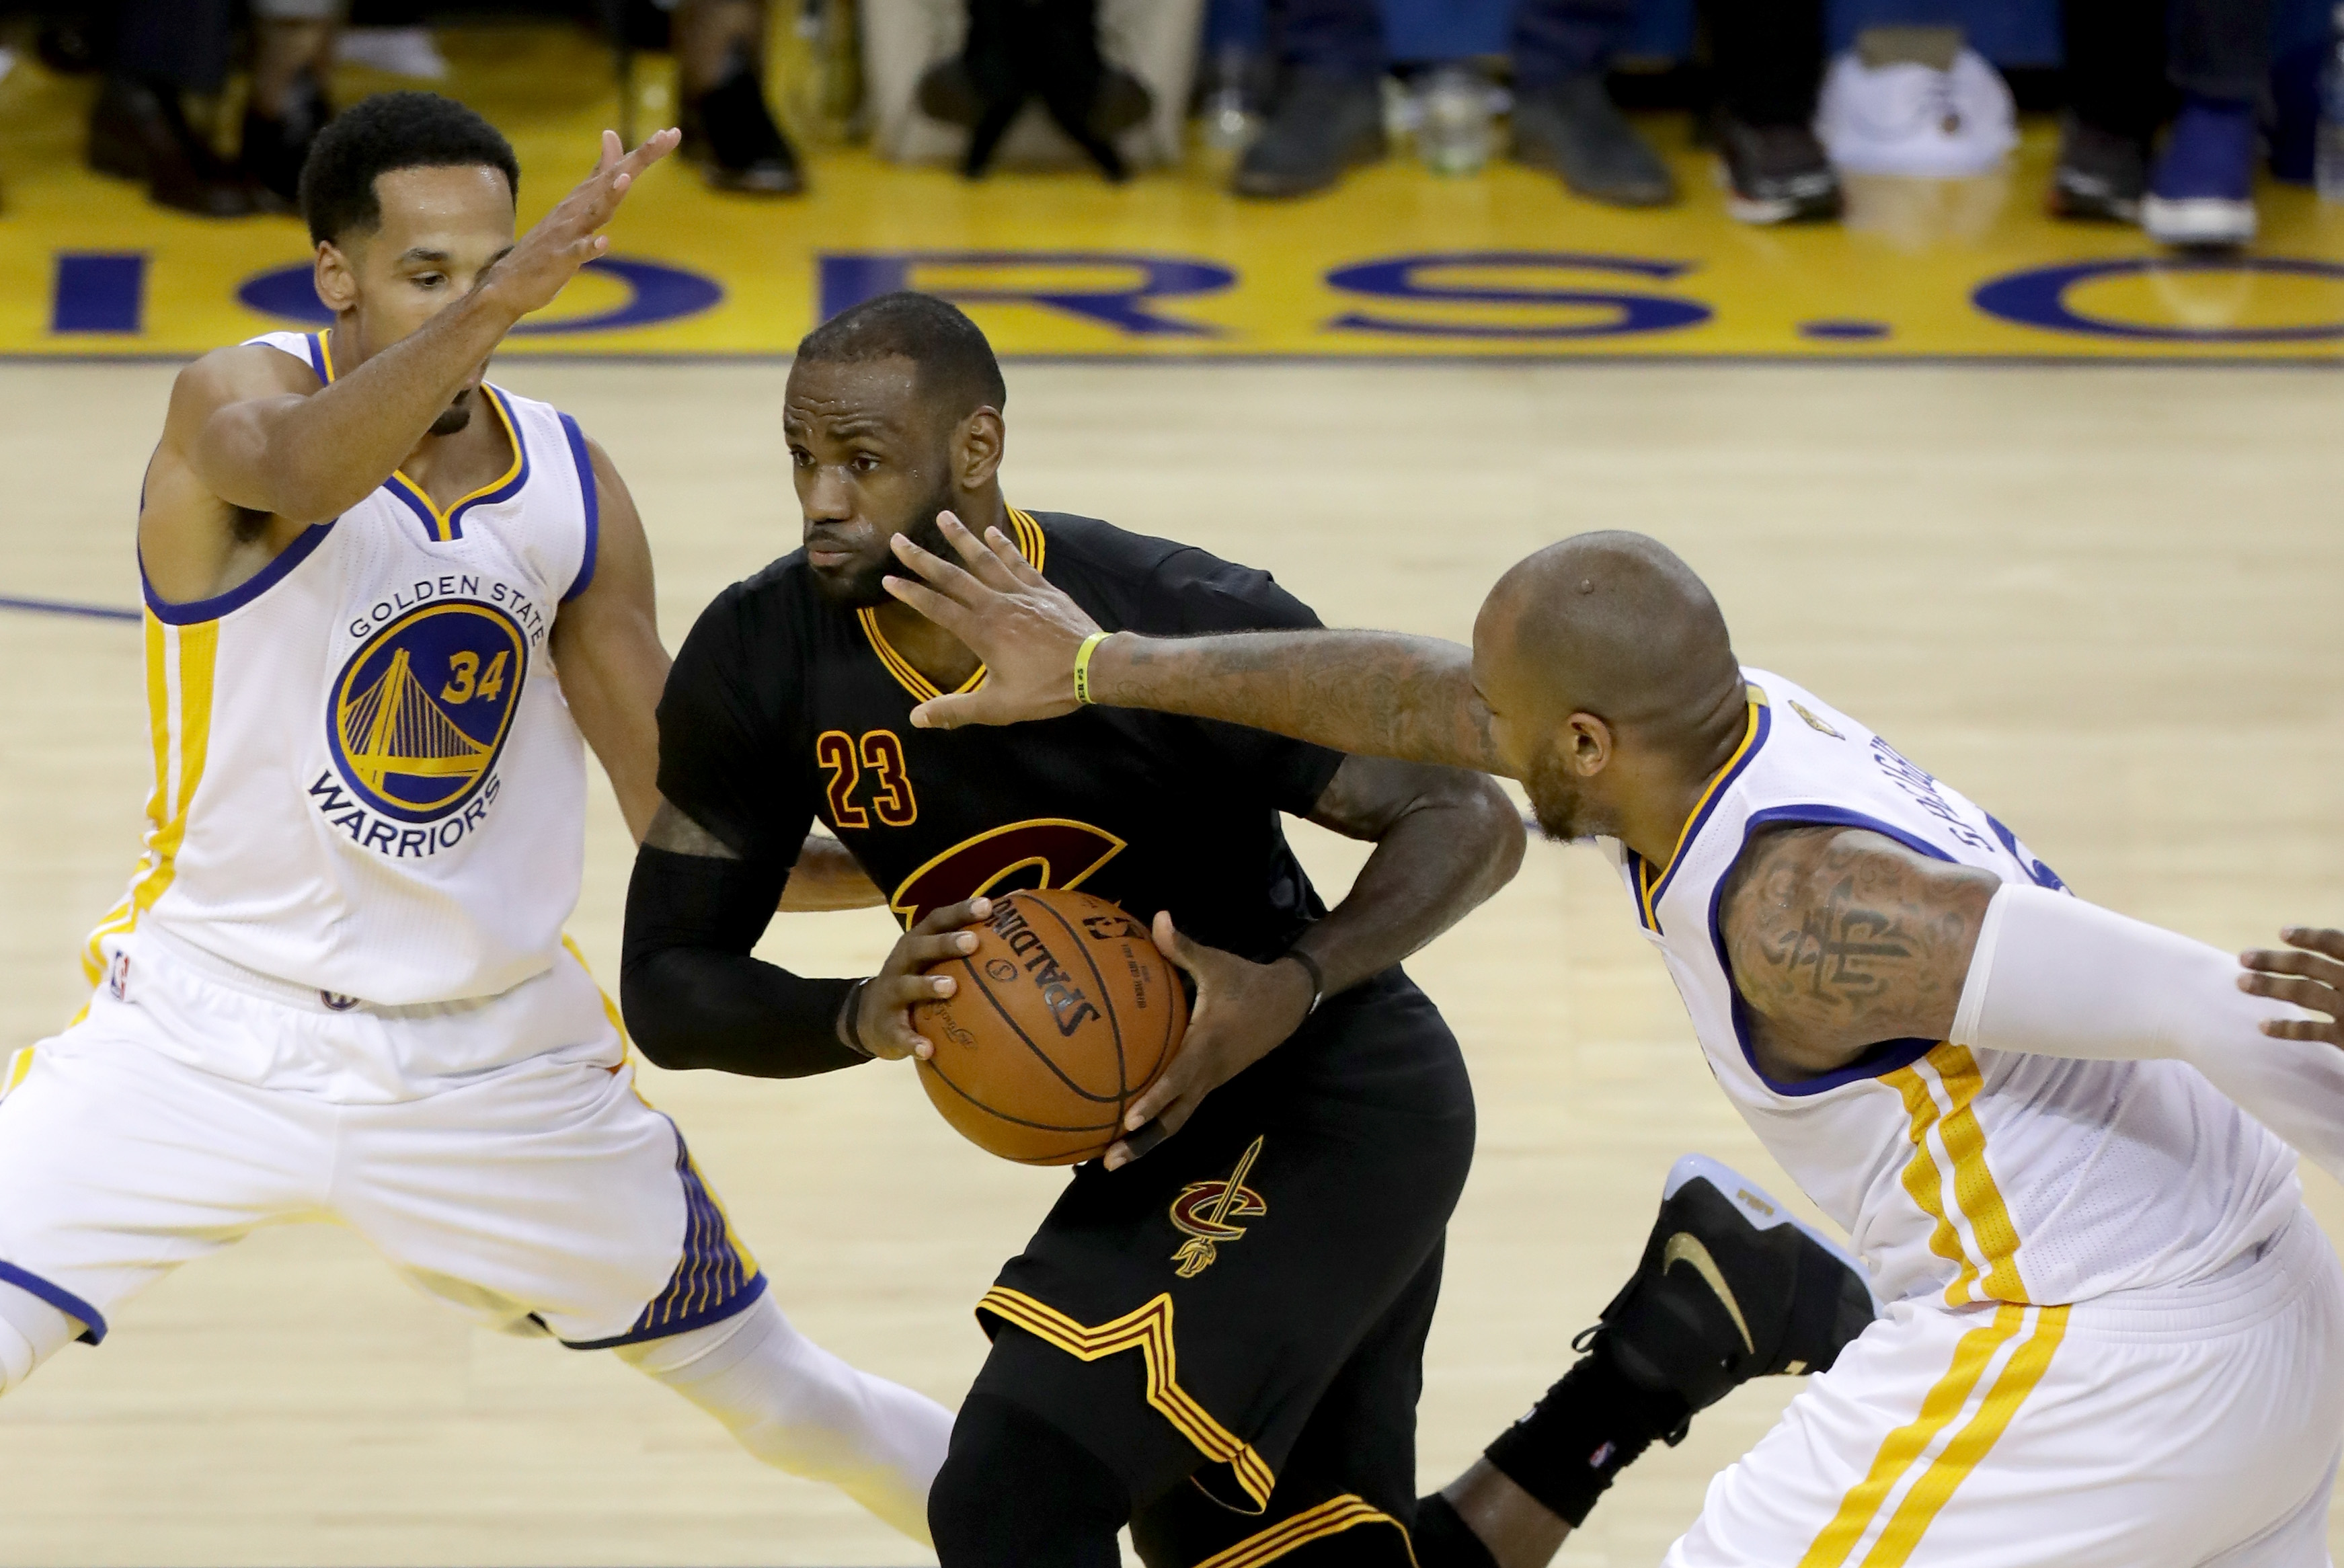 NBA Finals: LeBron James, Kyrie Irving Roar Back, Cavs Win ...Kyrie Irving Cleansing